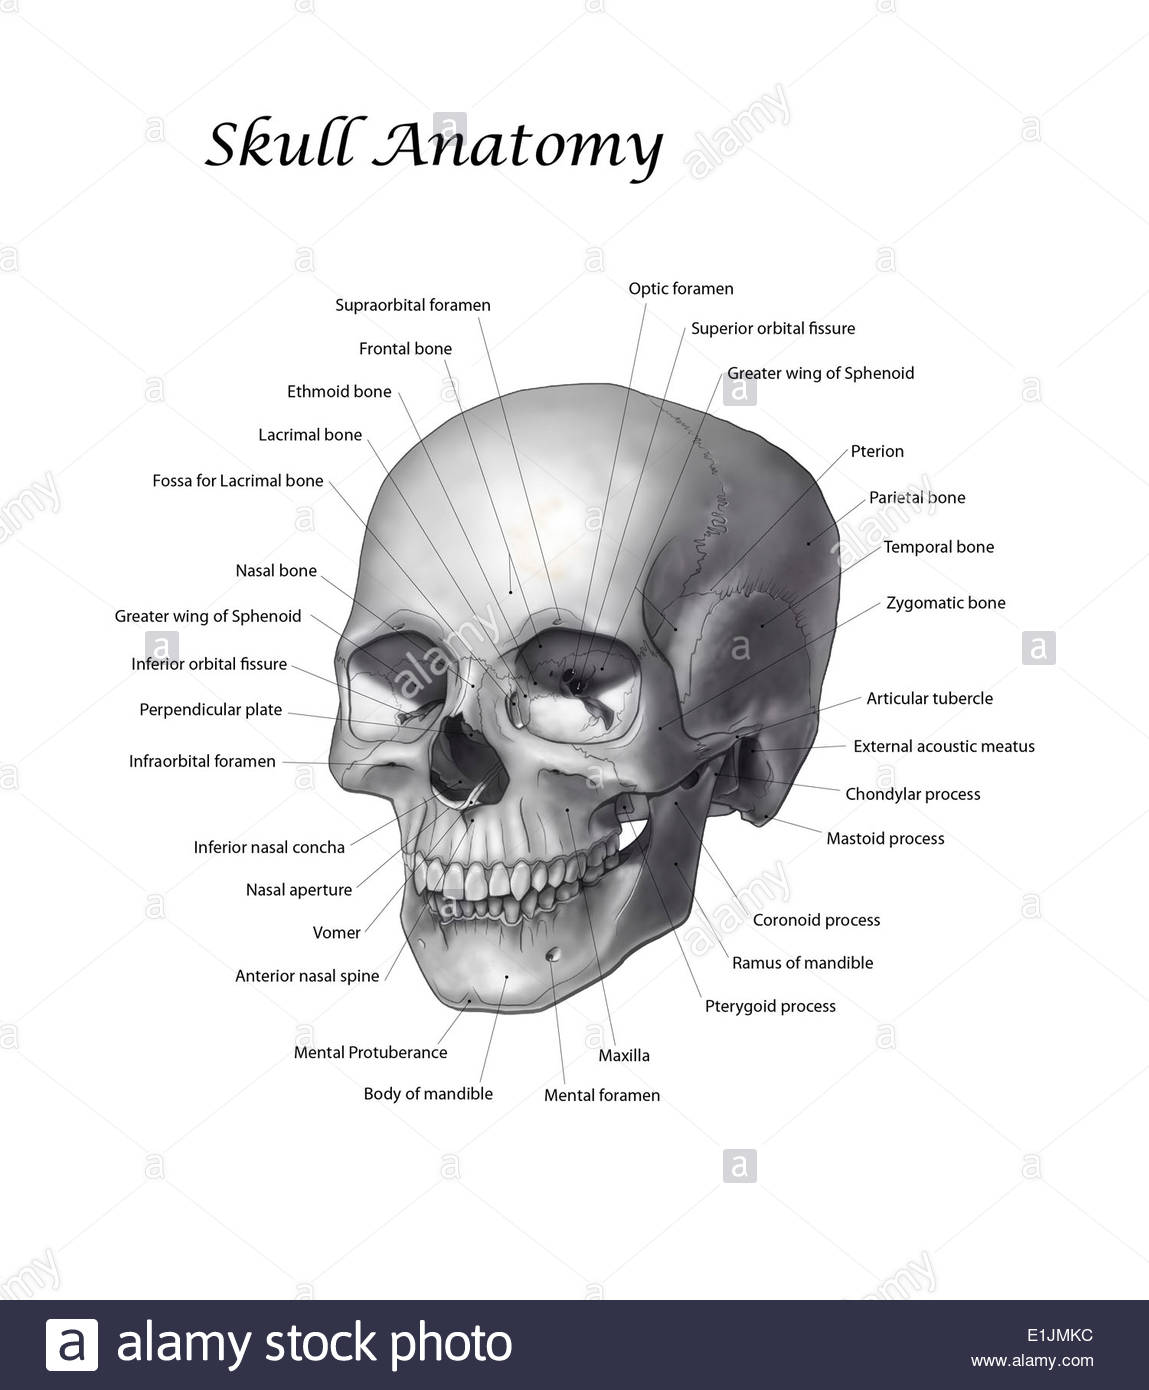 Black and white illustration of a human skull with labels. - Stock Image